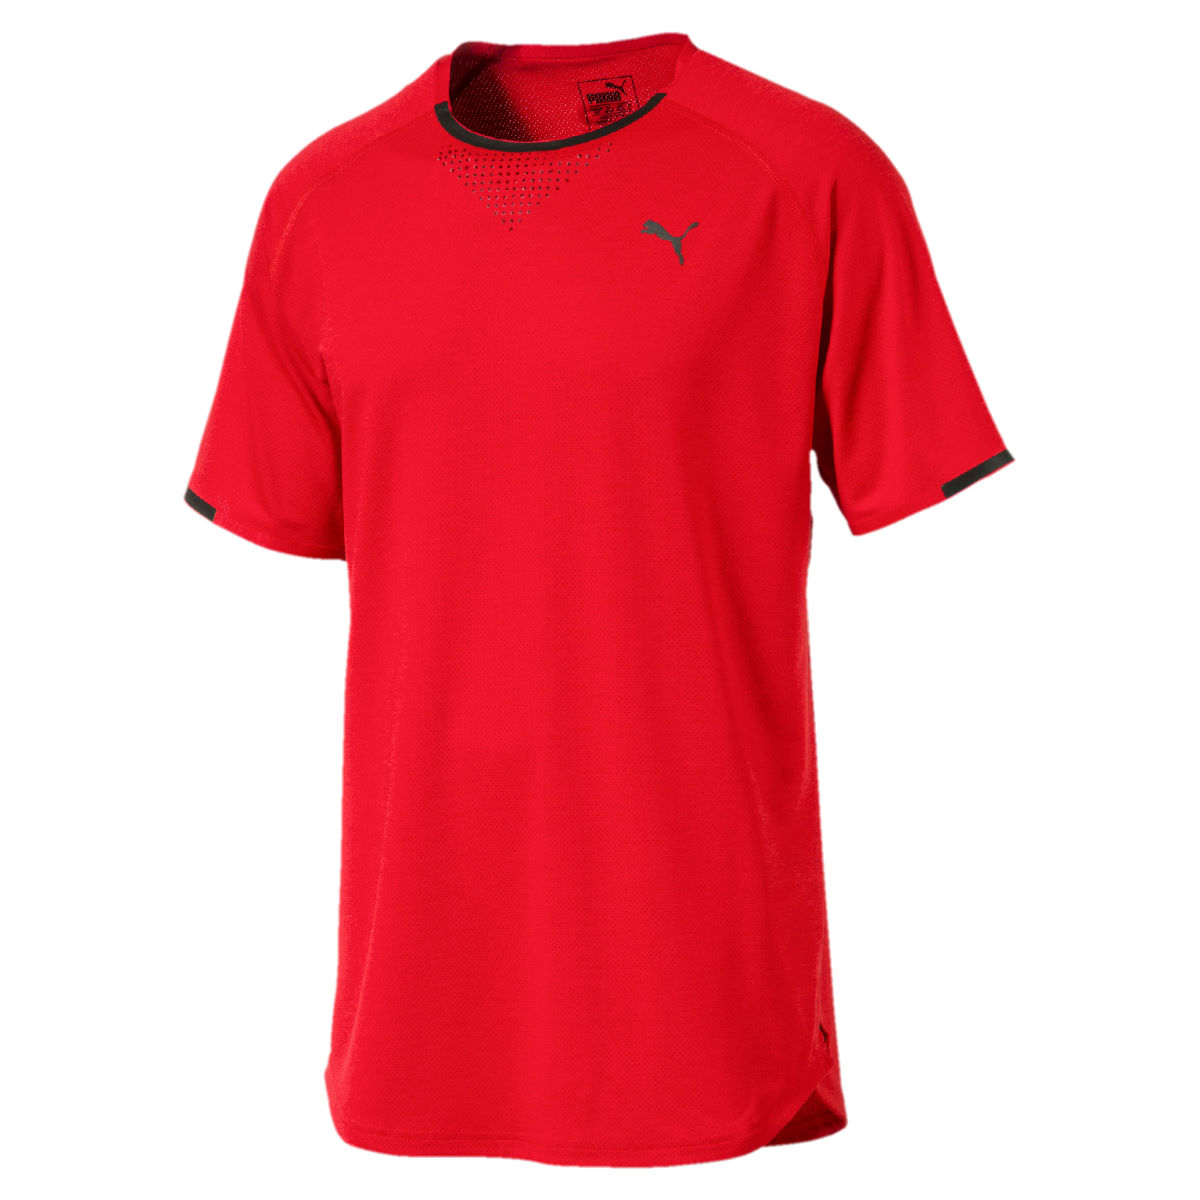 Puma Energy Laser Short Sleeve Gym Tee - S Flame Scarlet Heathe